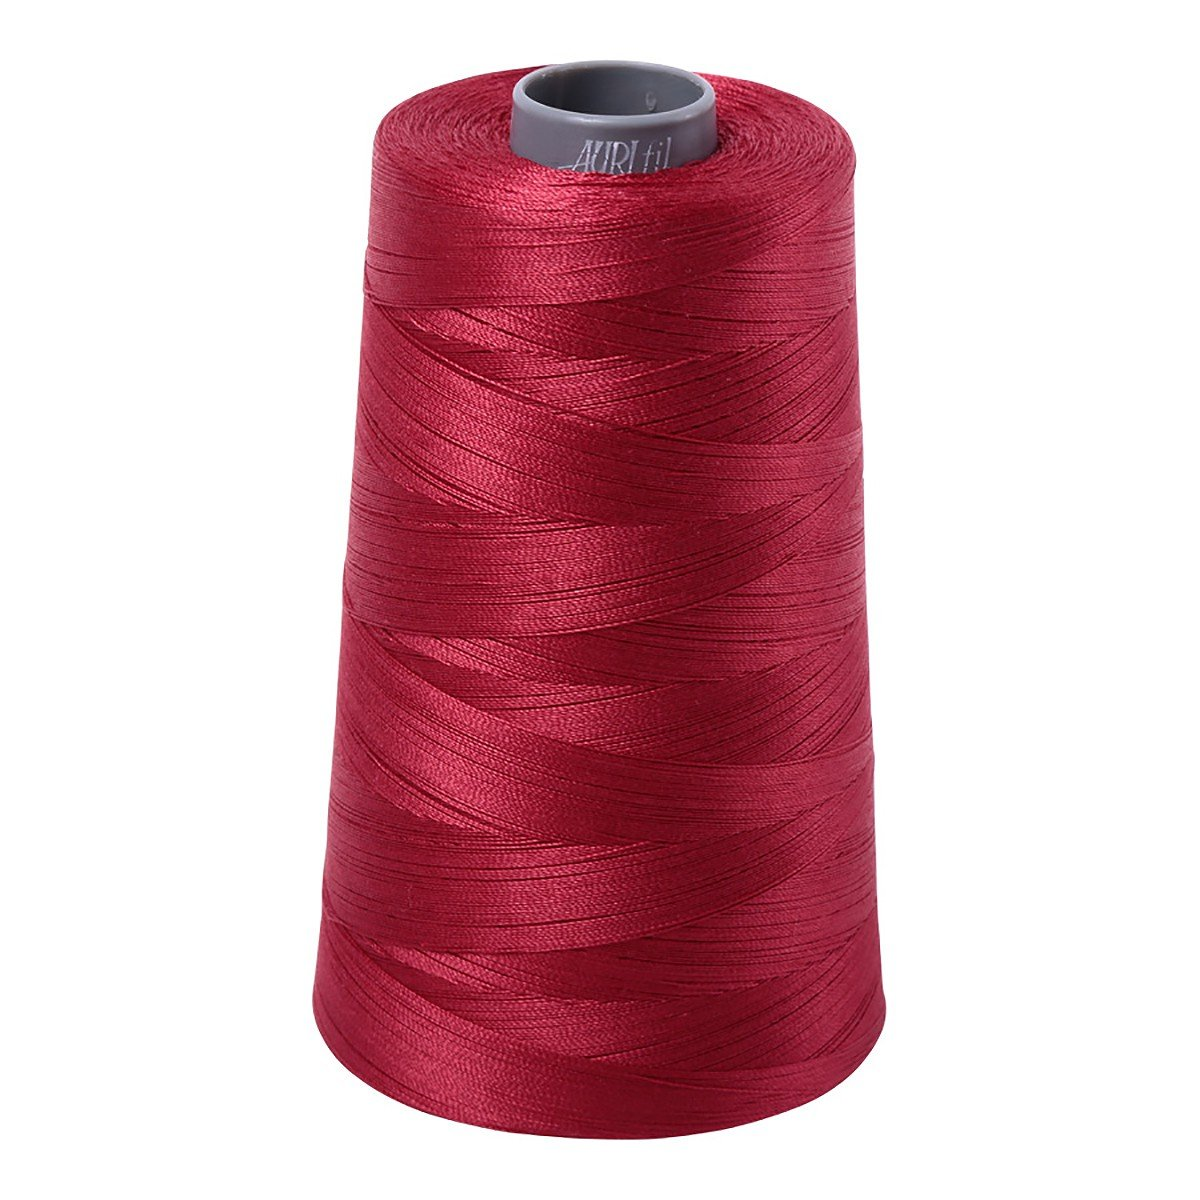 Mako (Cotton) Embroidery Thread 28wt 3609yds Burgundy